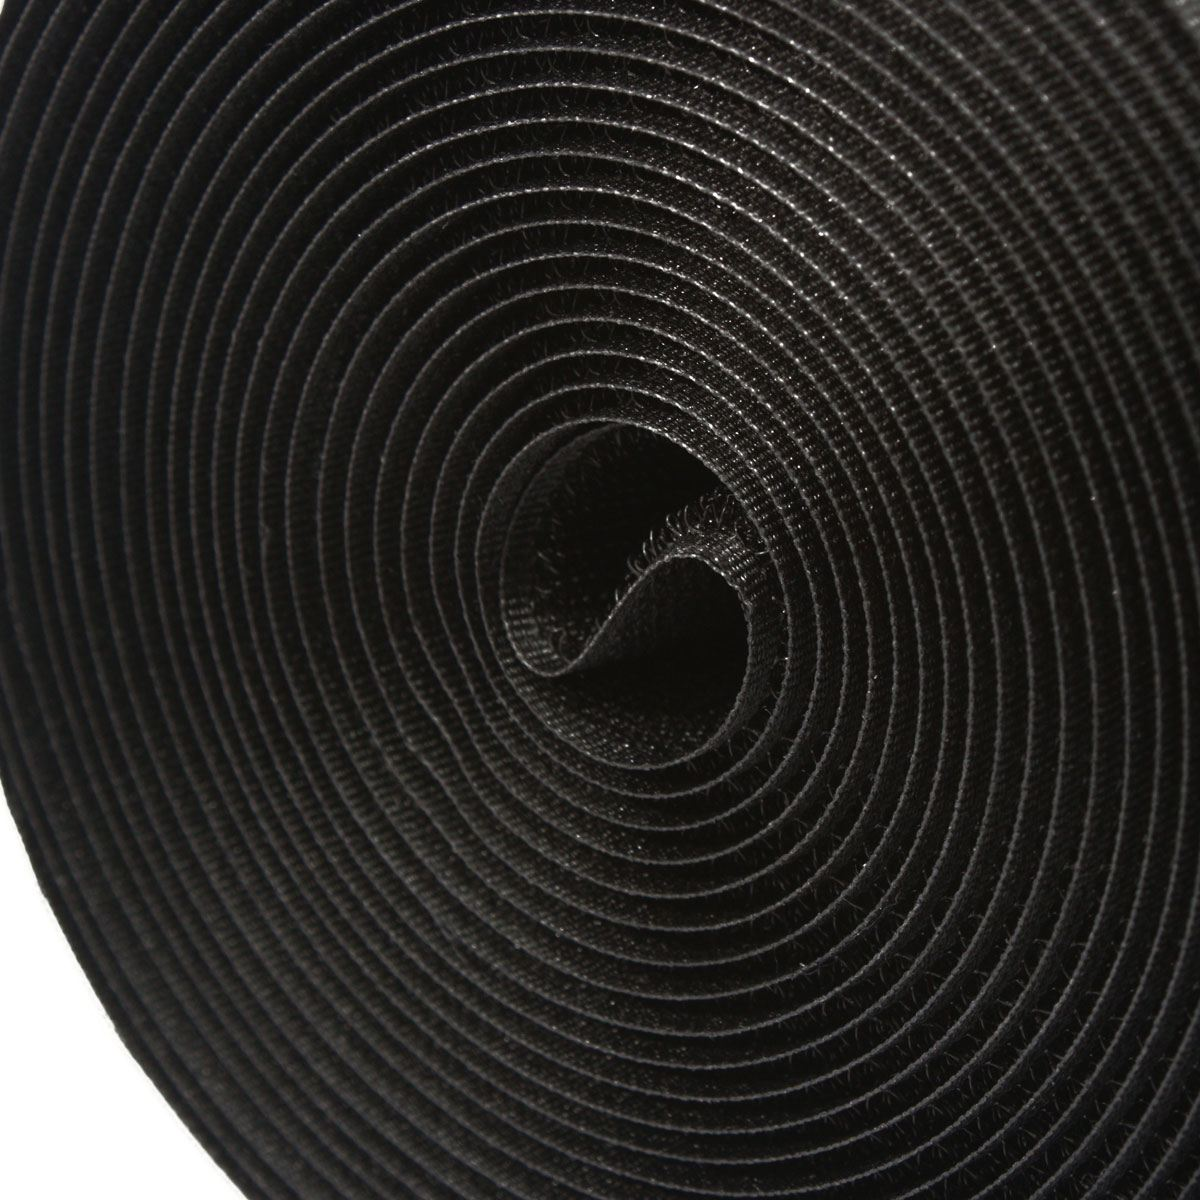 10cm length Cable Management Organizer Floor Carpet Nylon Cover 200cm Wire Sleeve Protector